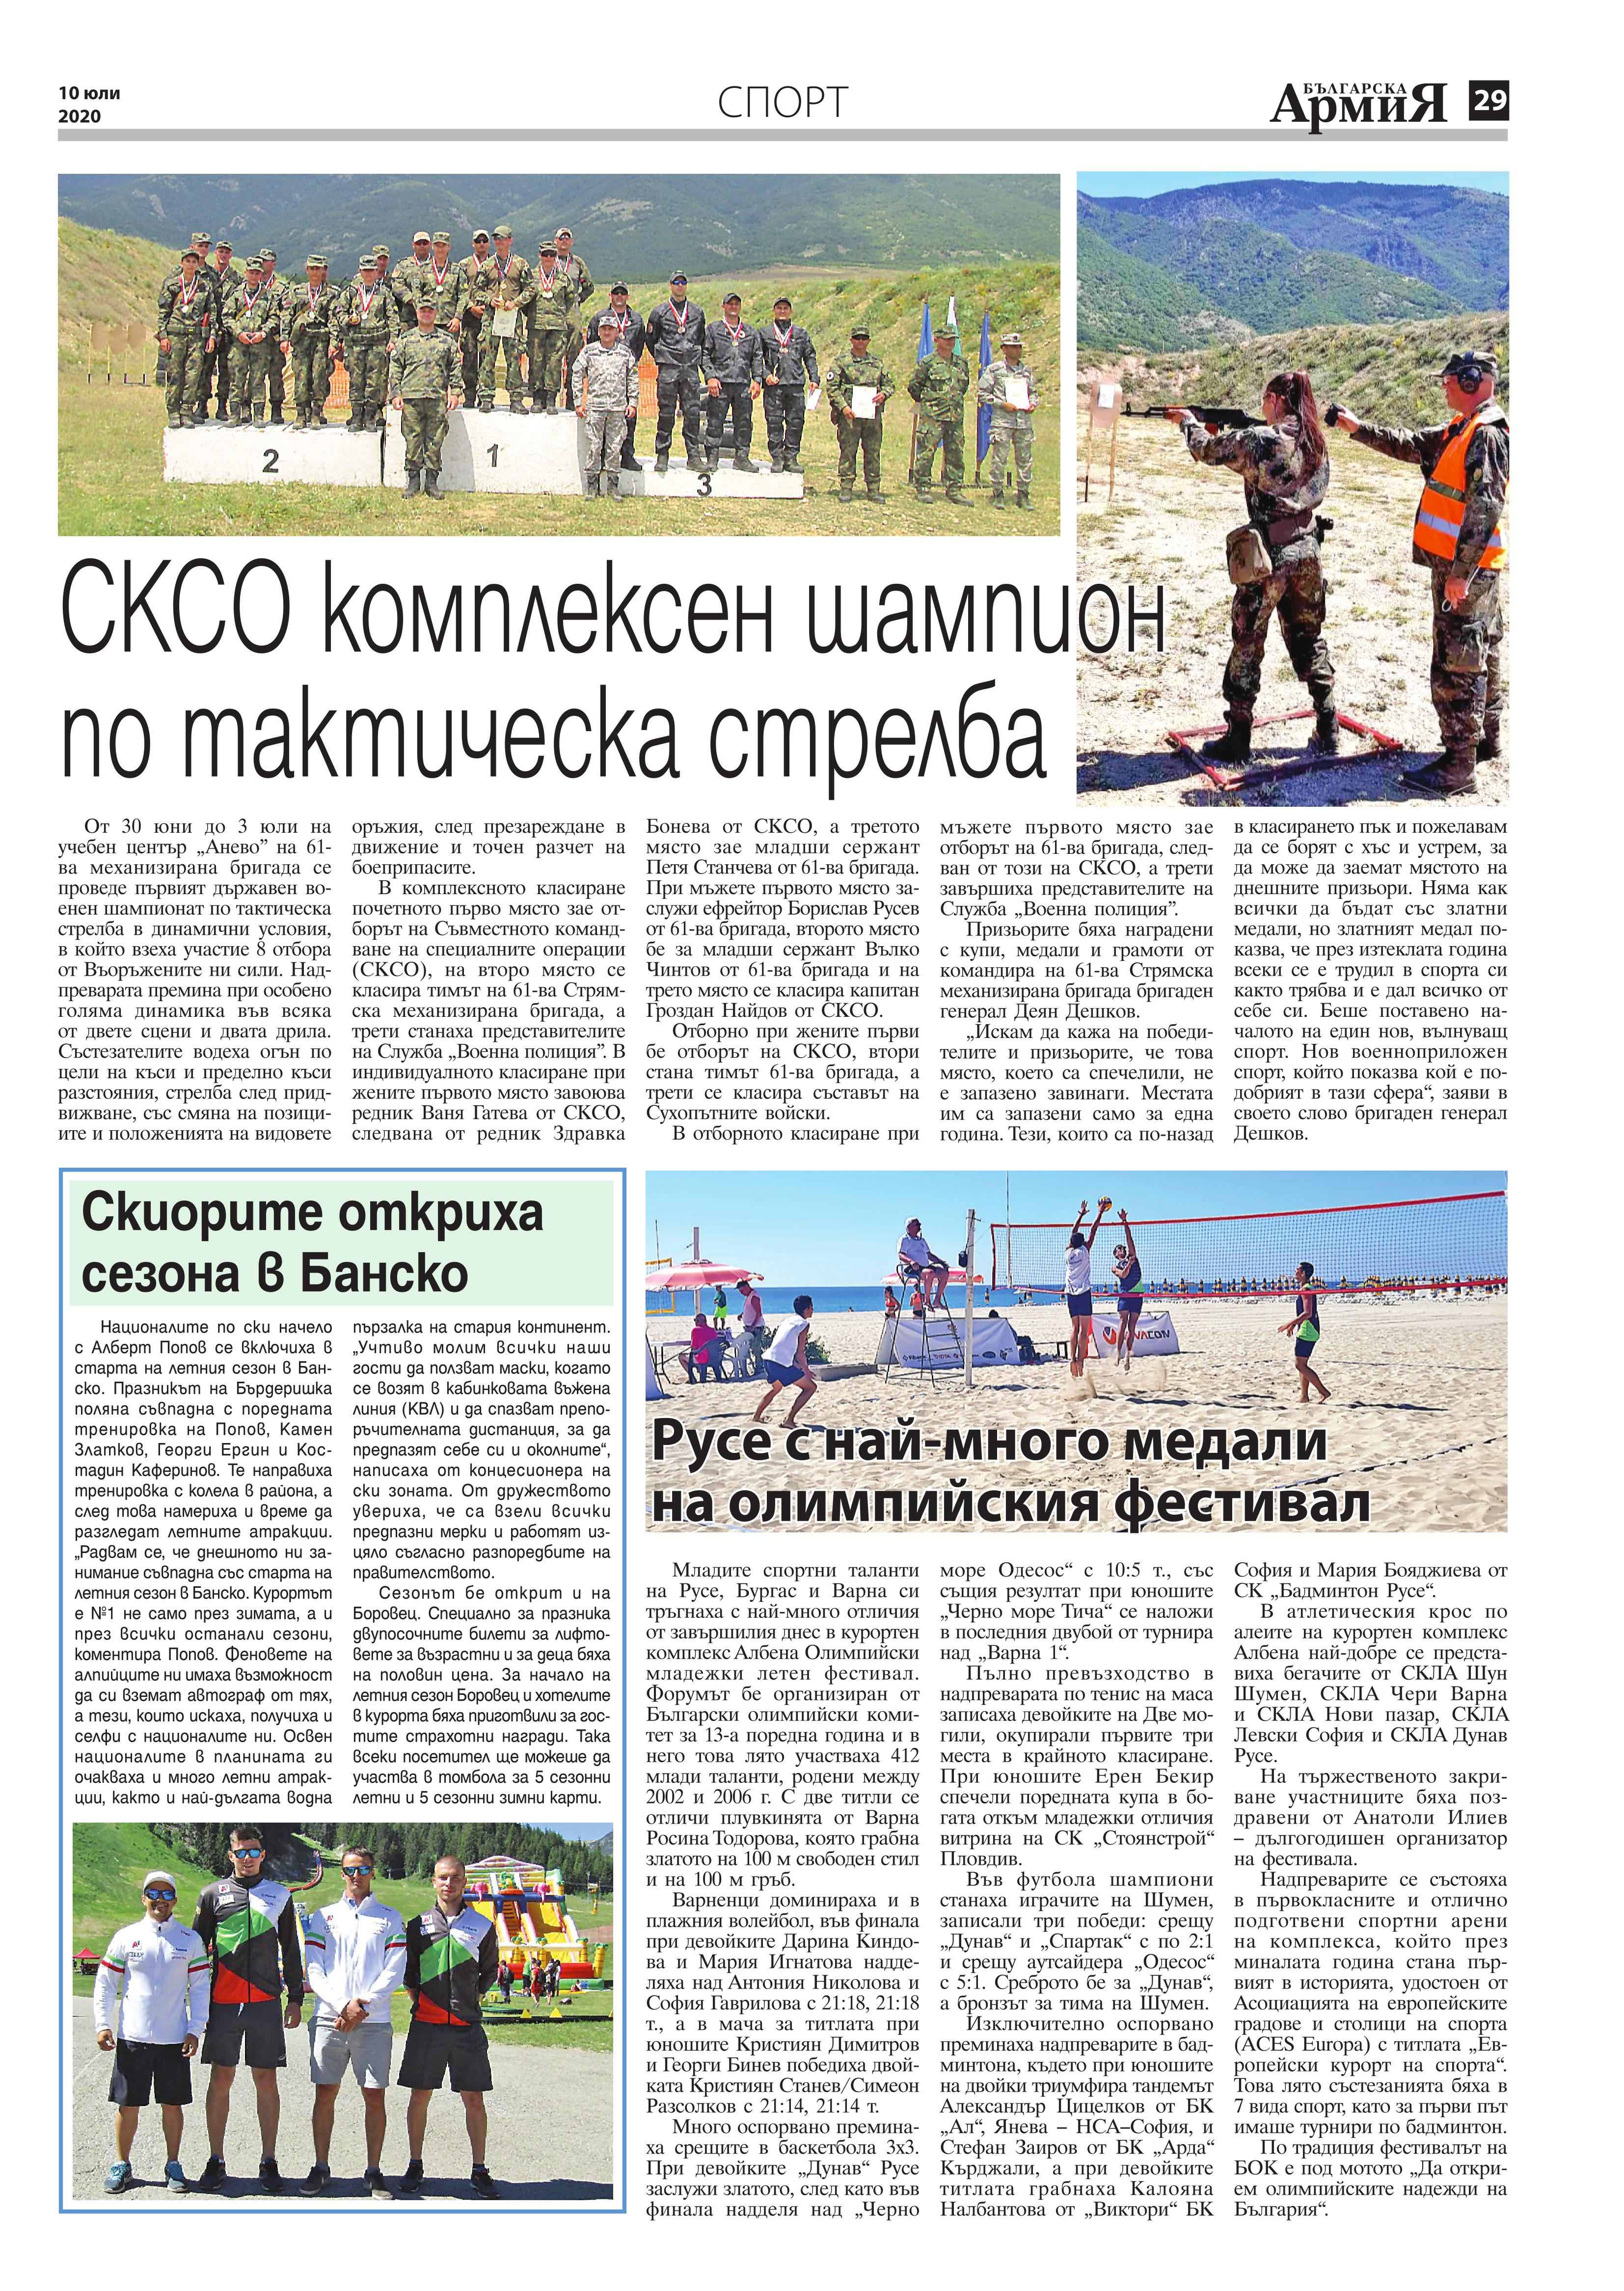 https://armymedia.bg/wp-content/uploads/2015/06/29.page1_-118.jpg